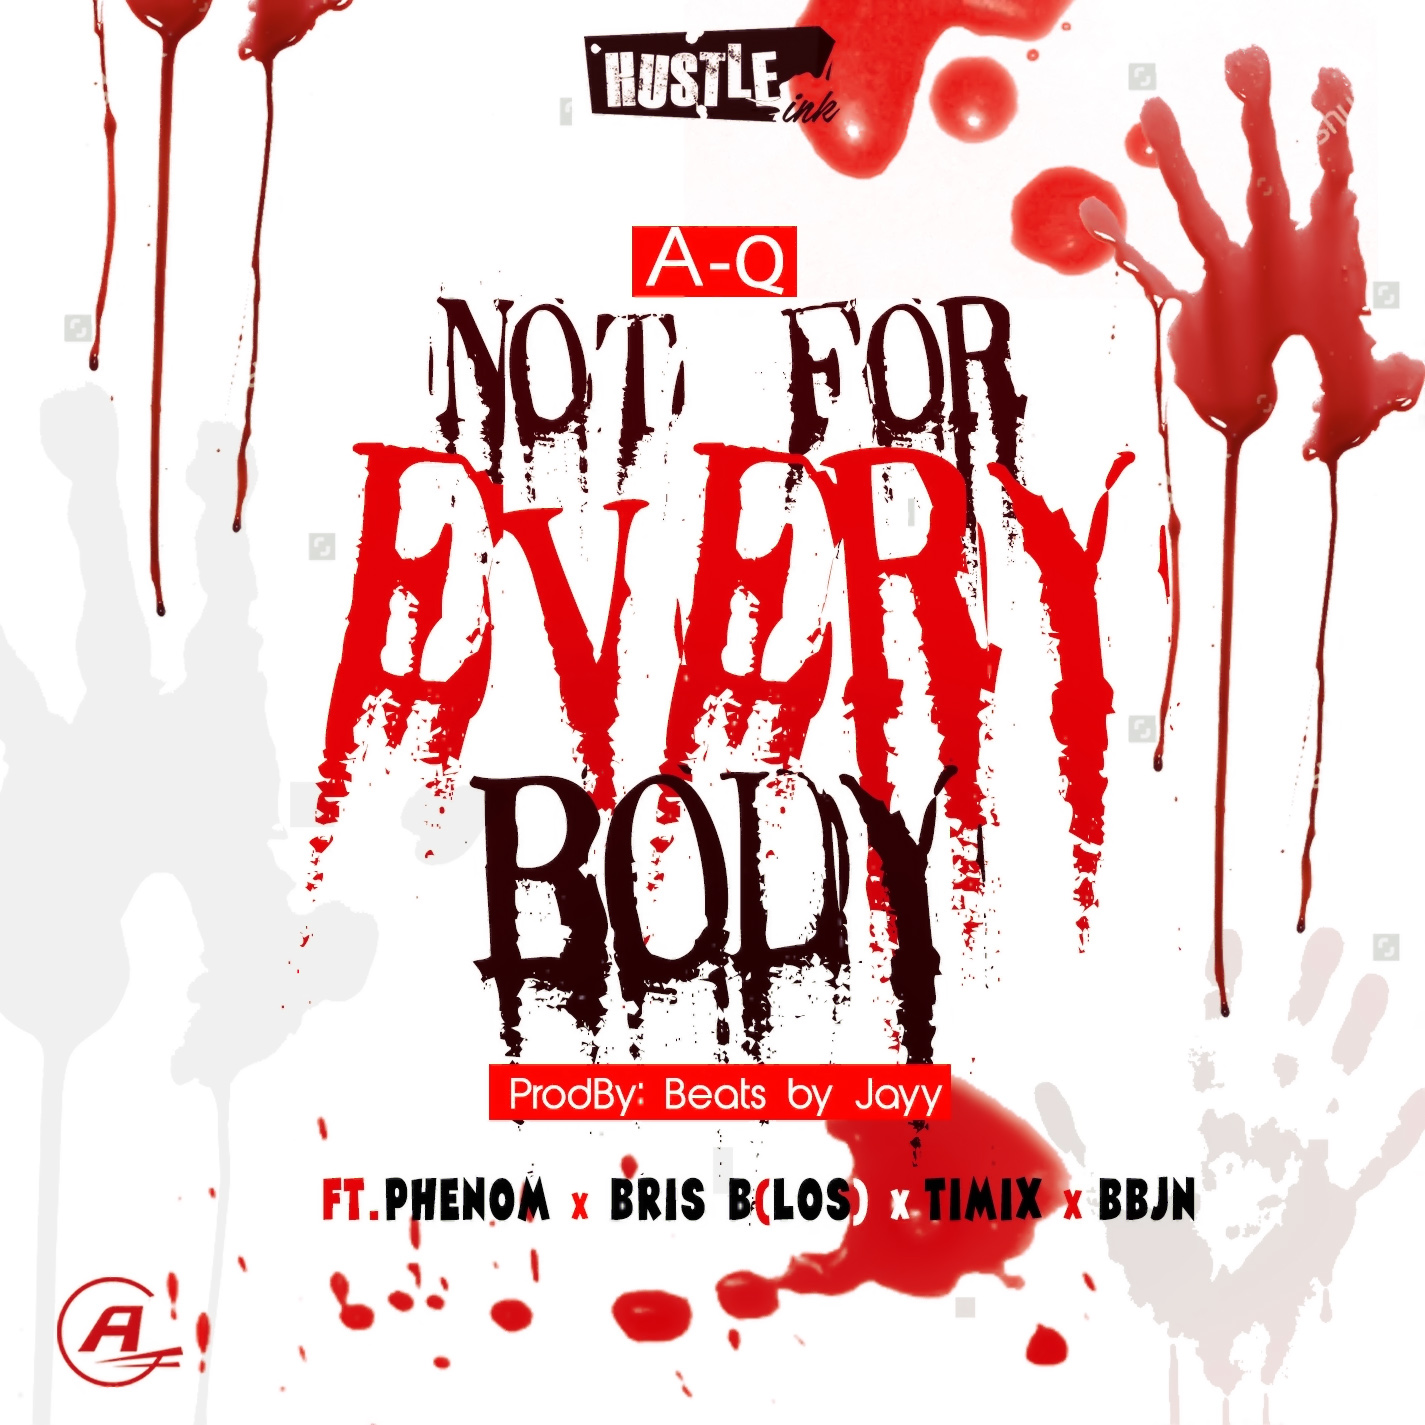 A-Q - Not For Everybody ft. Phenom, Bris B , Timix X BBJN